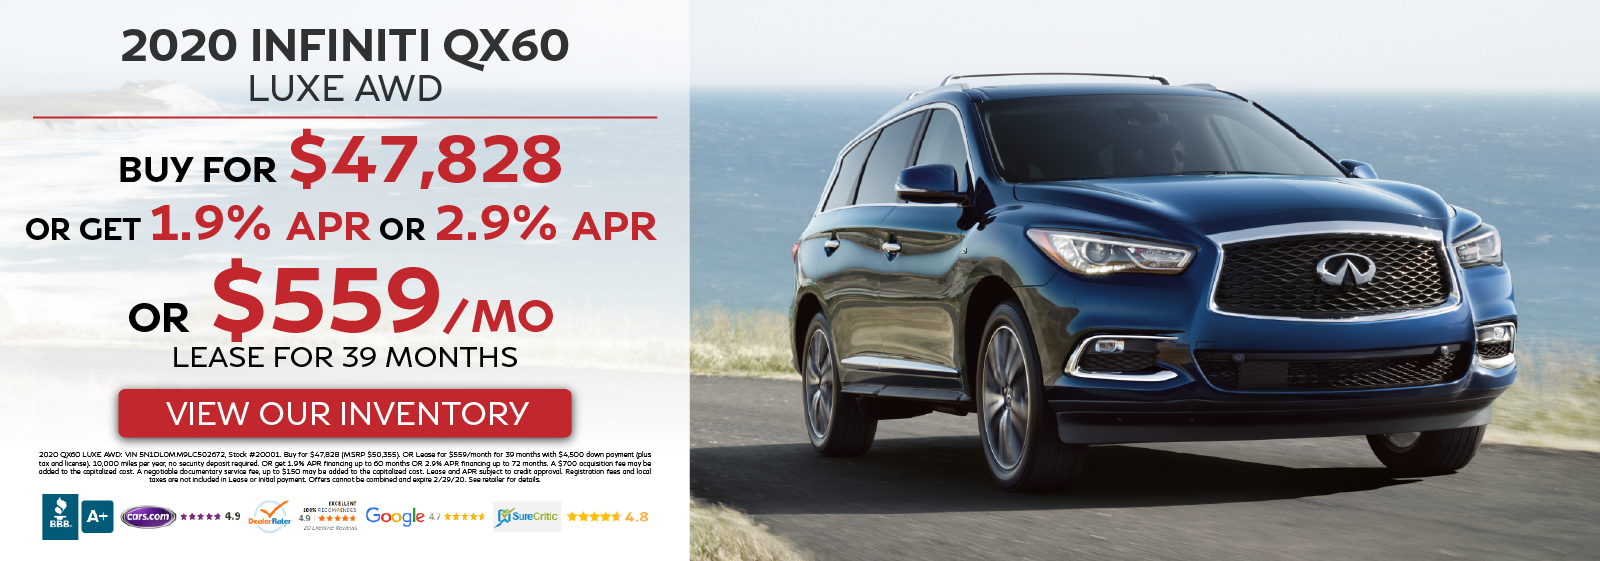 2020 QX60 LUXE AWD - Buy for $47,828 OR Get 1.9% OR 2.9% APR Financing OR Lease for $559 per month for 39 months - View Our Inventory!